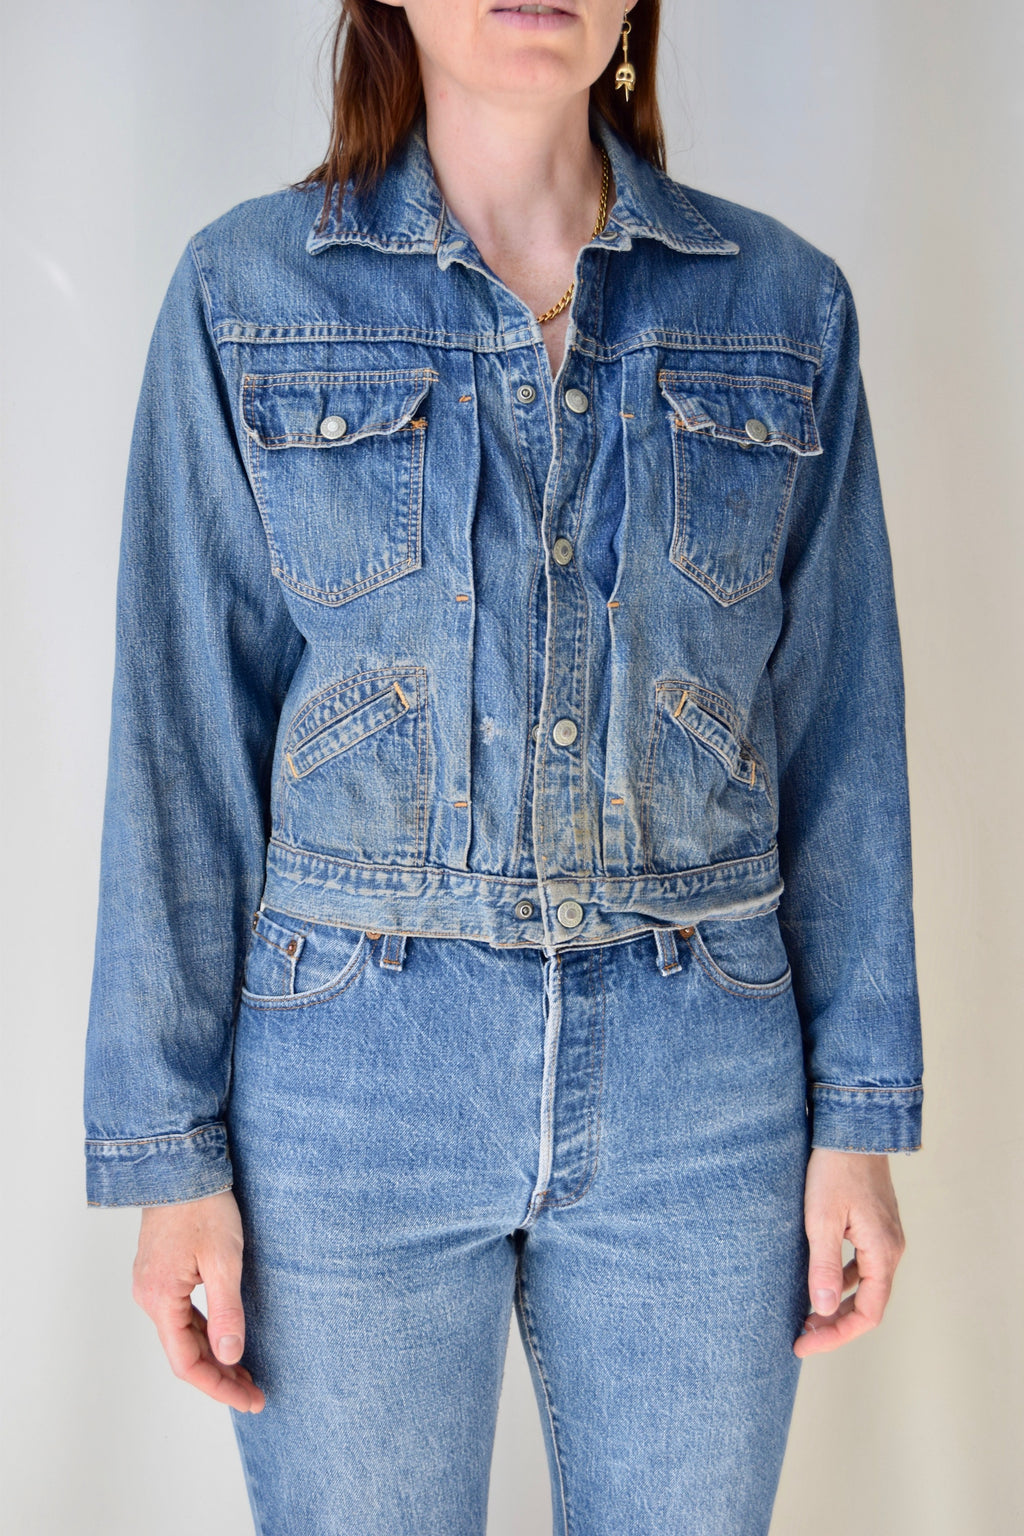 1950's JC Penney & Co Denim Jacket